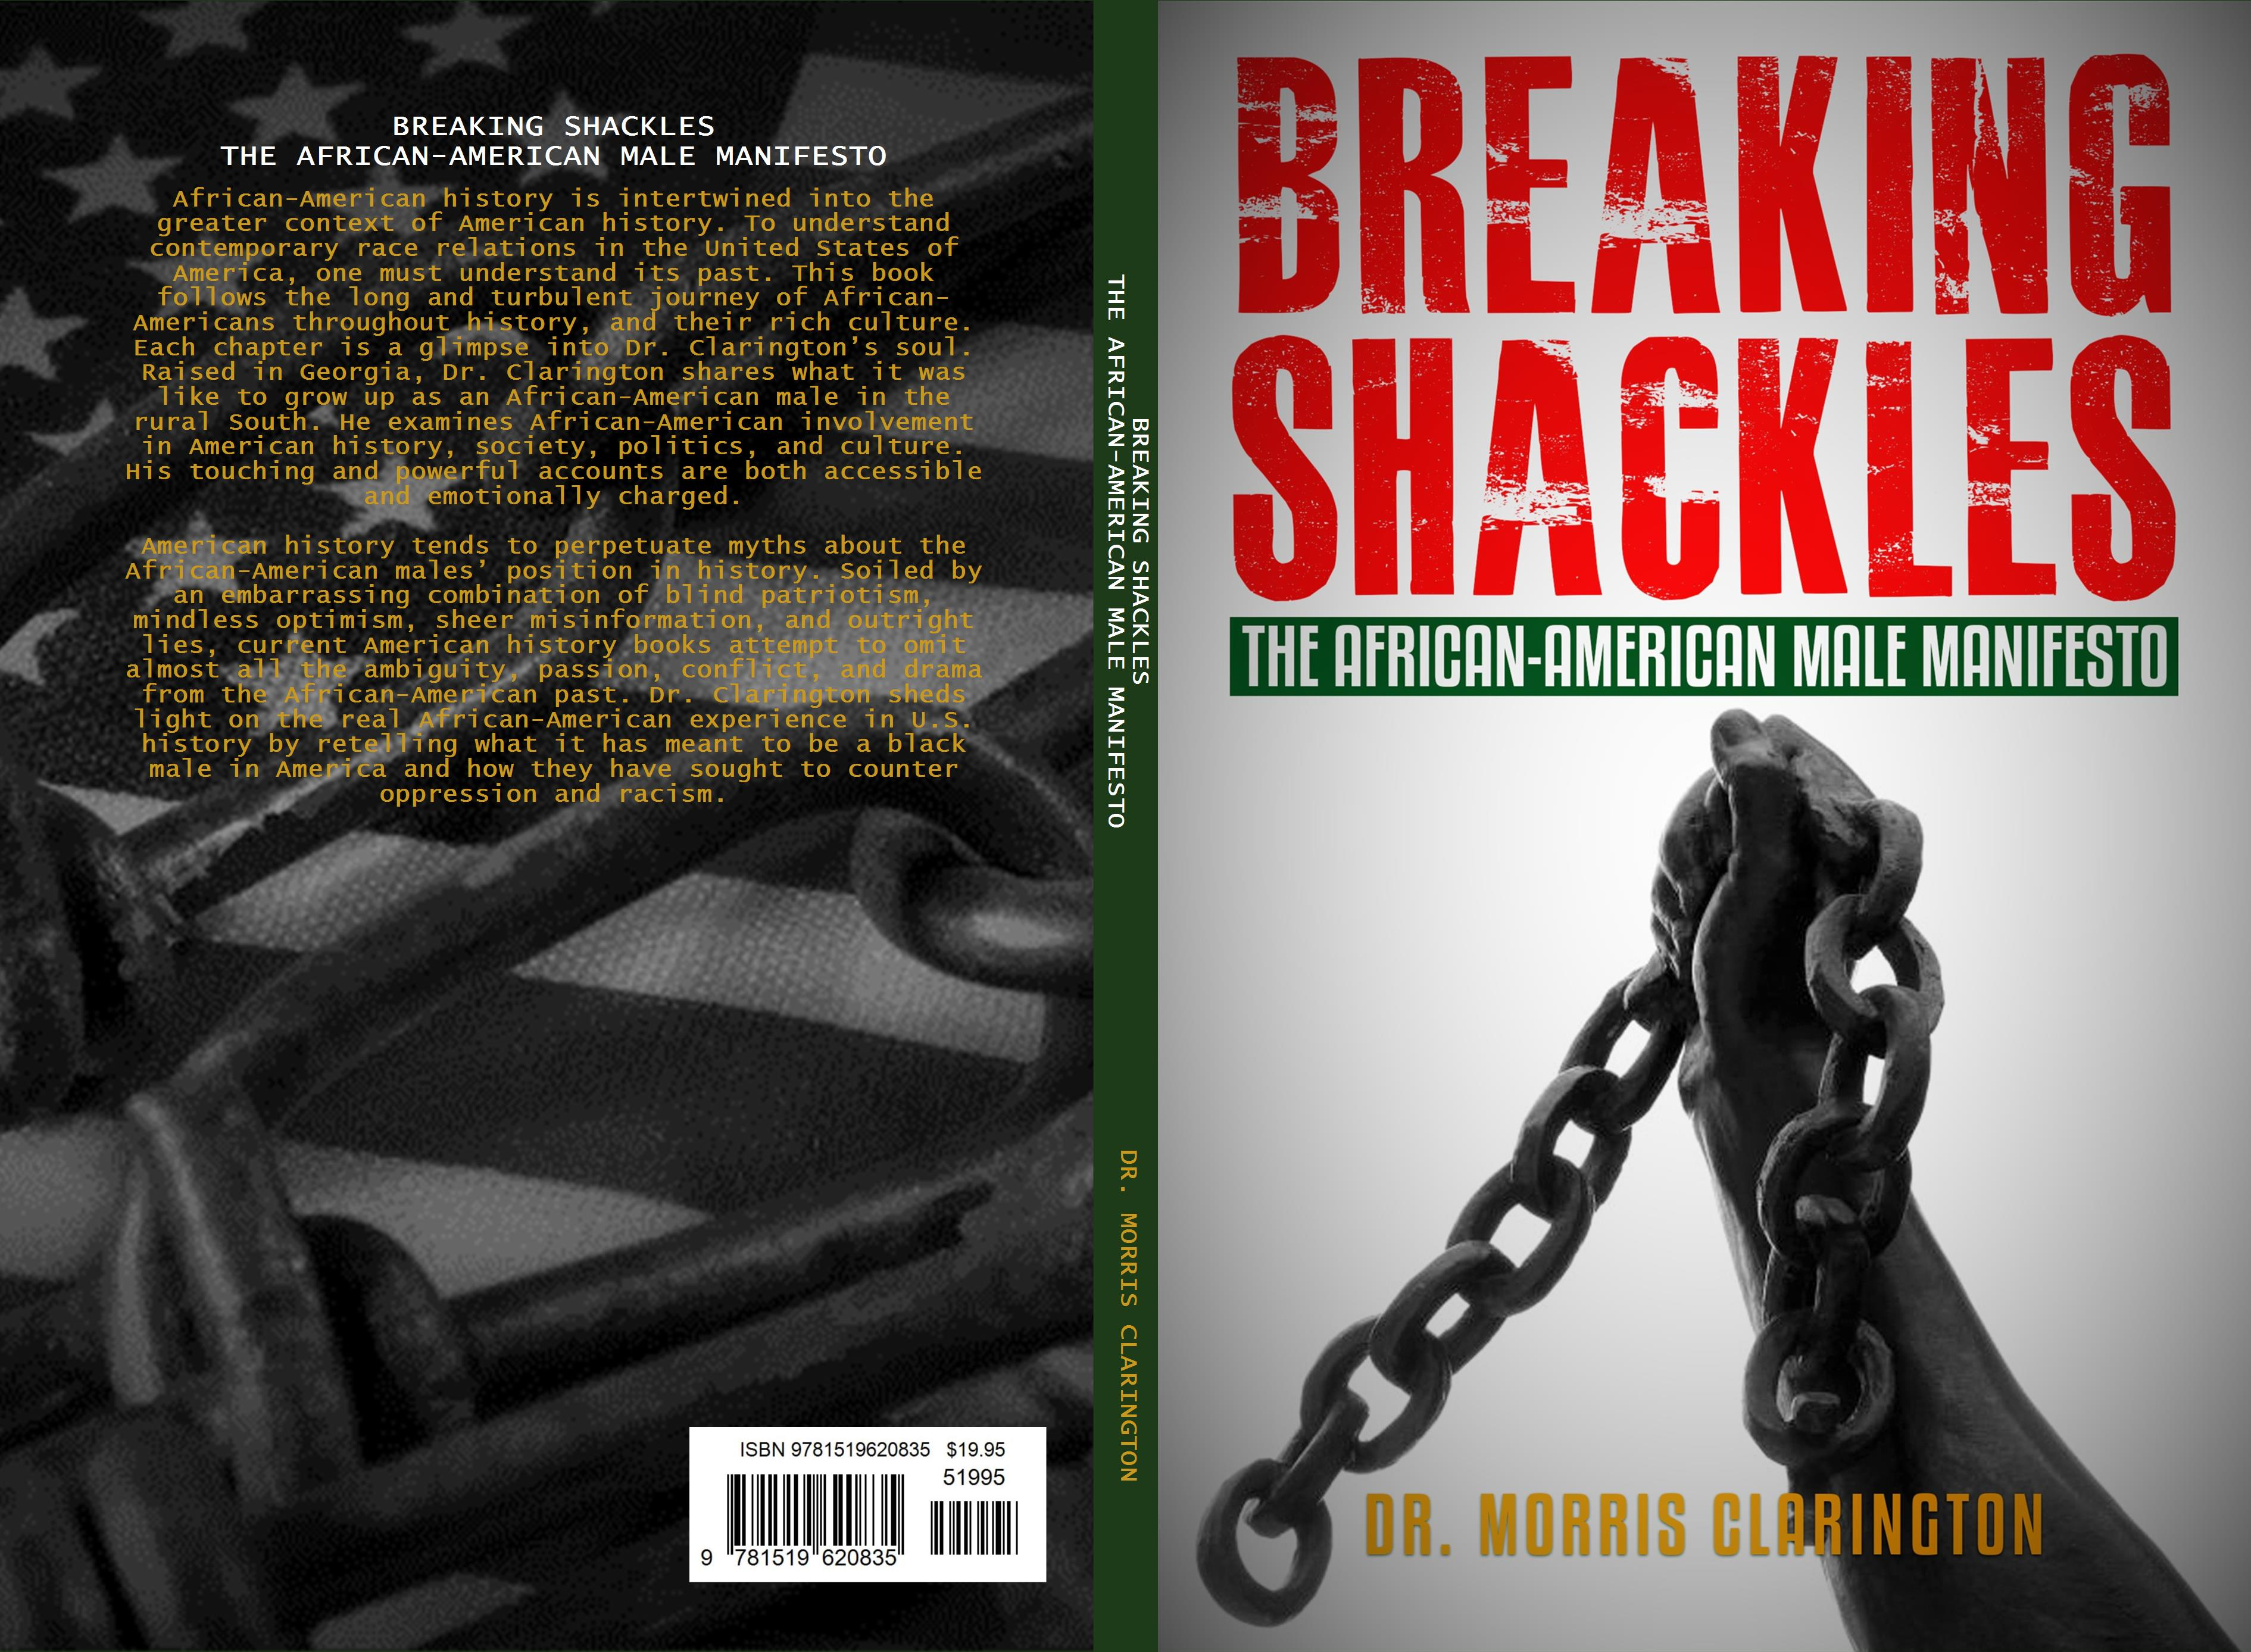 BREAKING SHACKLES THE AFRICAN-AMERICAN MALE MANIFESTO cover image